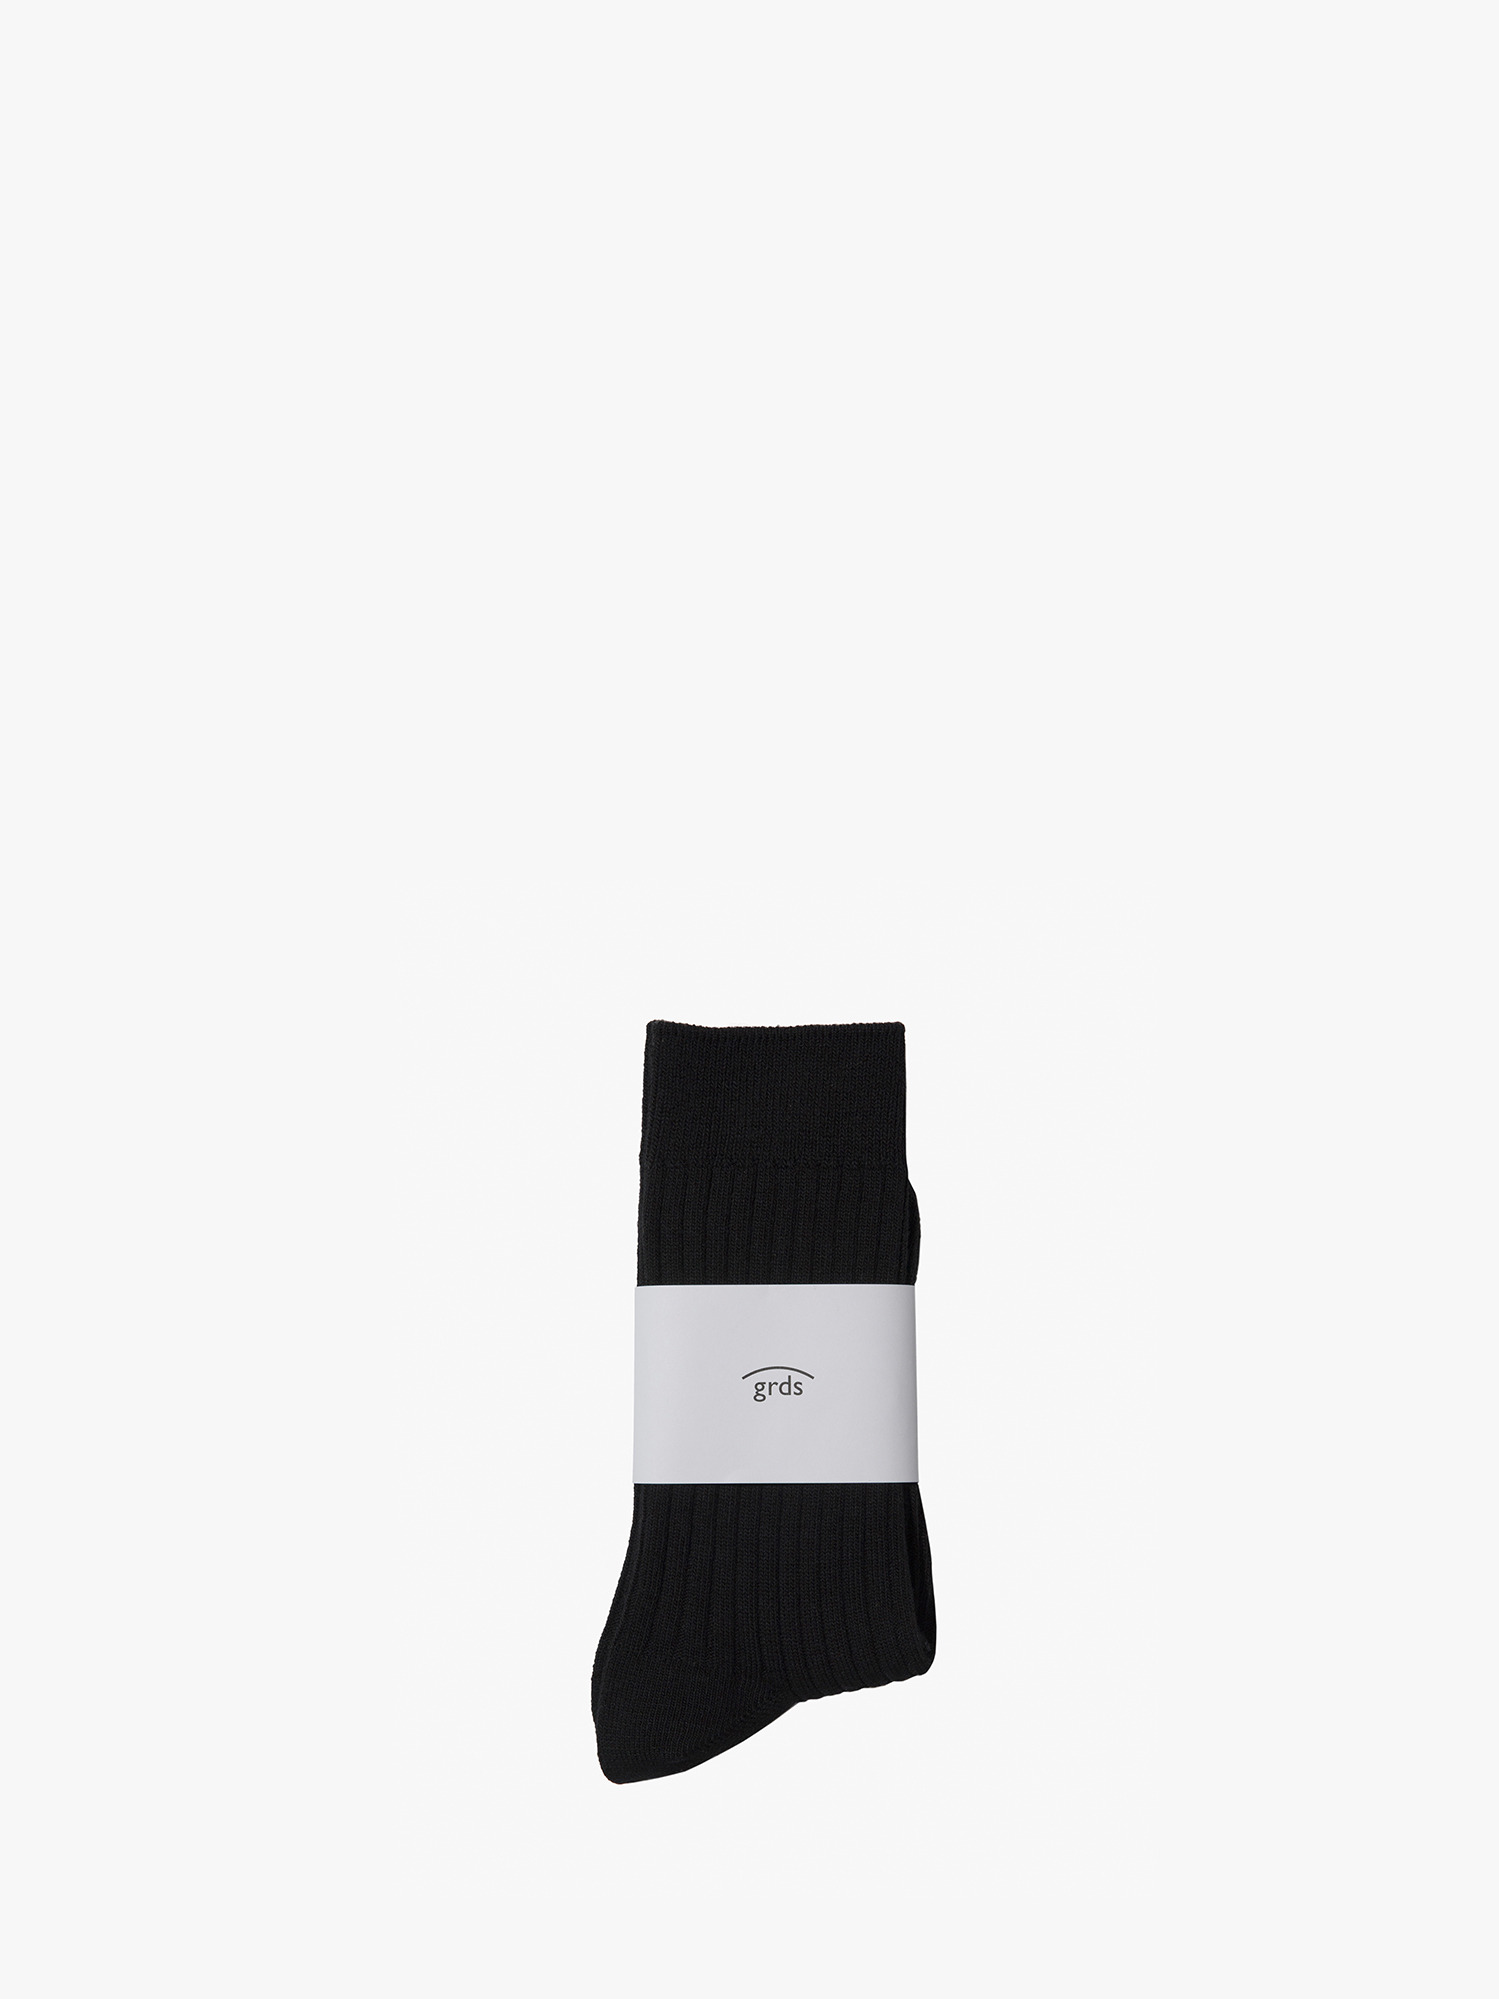 grds ribbed socks black